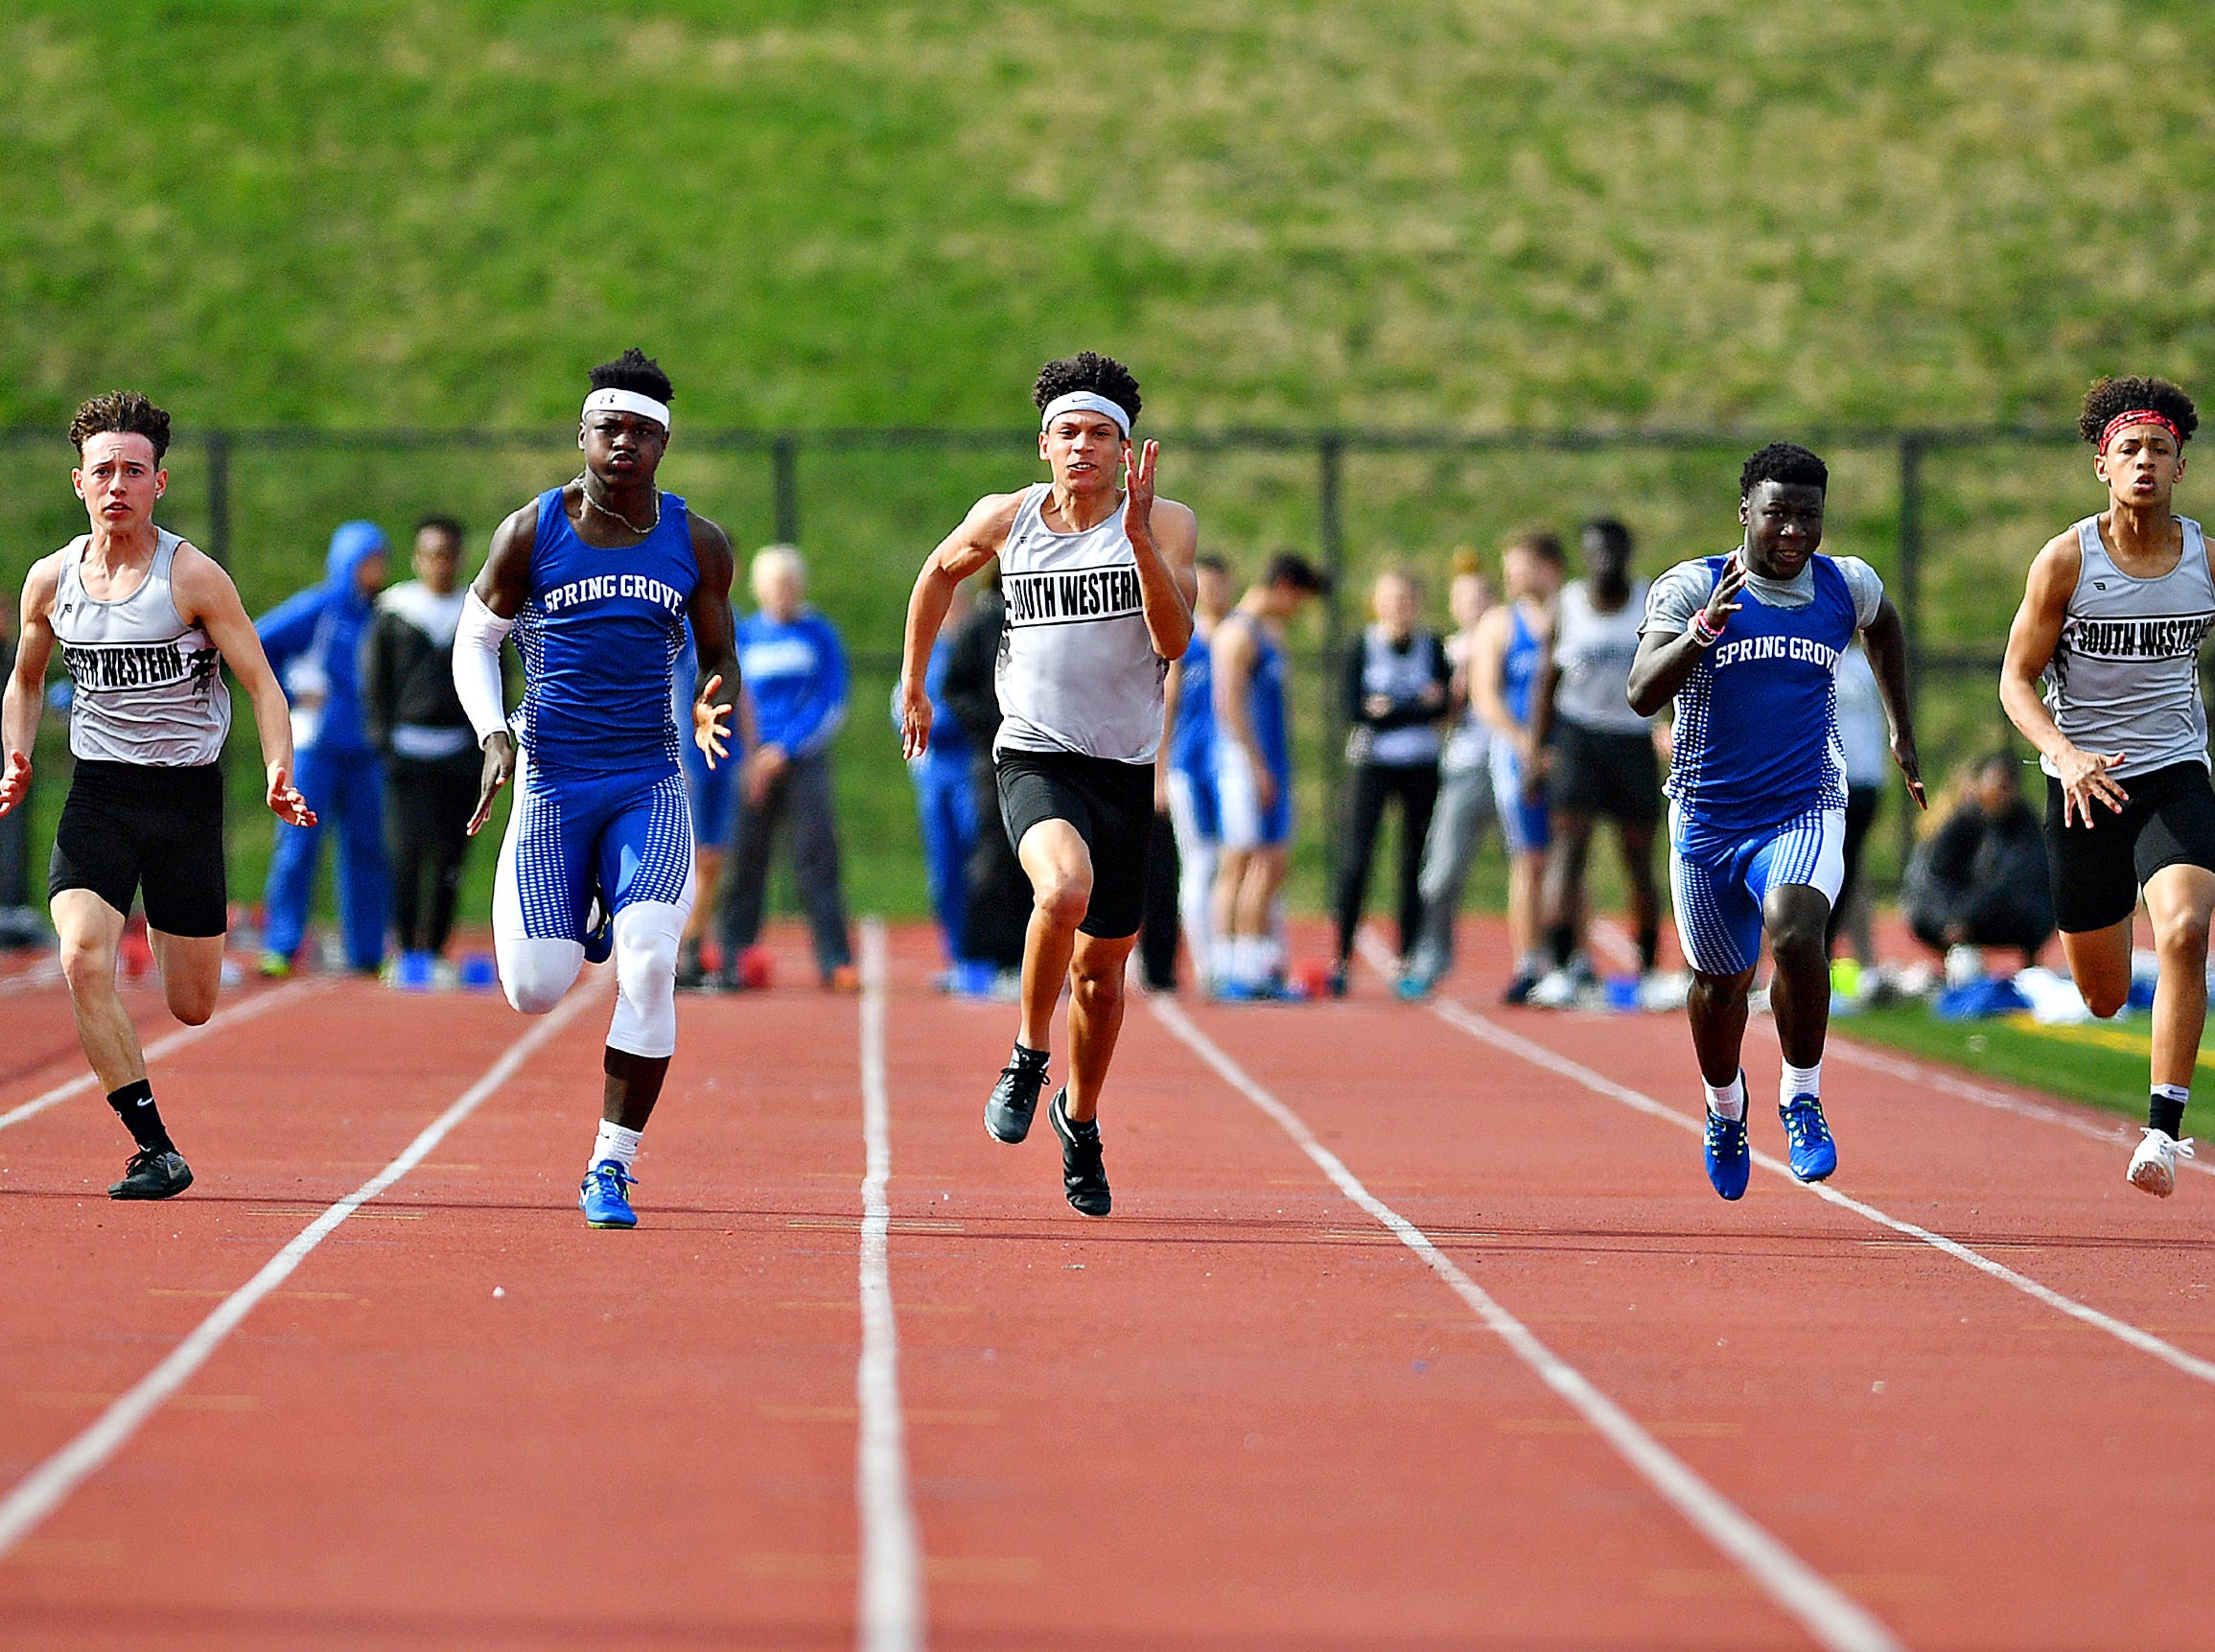 South Western vs Spring Grove during track action in Jackson Township, Thursday, April 11, 2019. Dawn J. Sagert photo